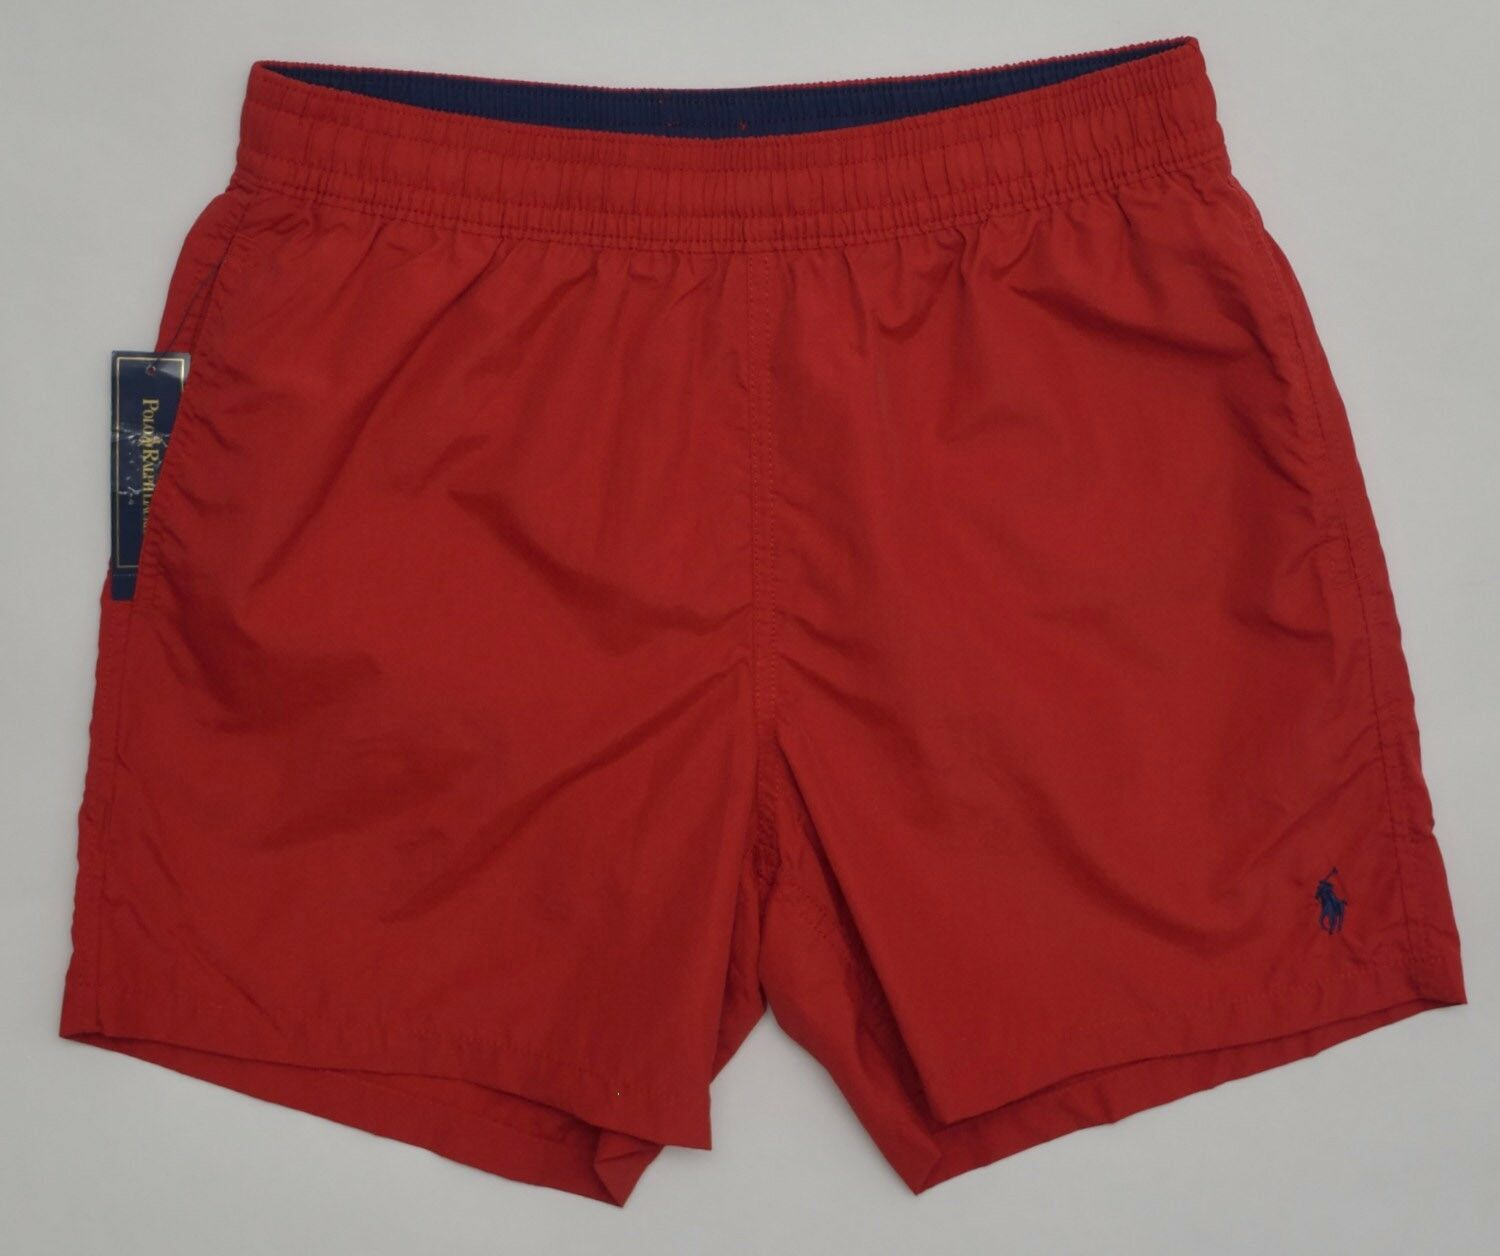 Men's POLO RALPH LAUREN Red Swimsuit Trunks XL Extra Large NWT Navy Pony Nice